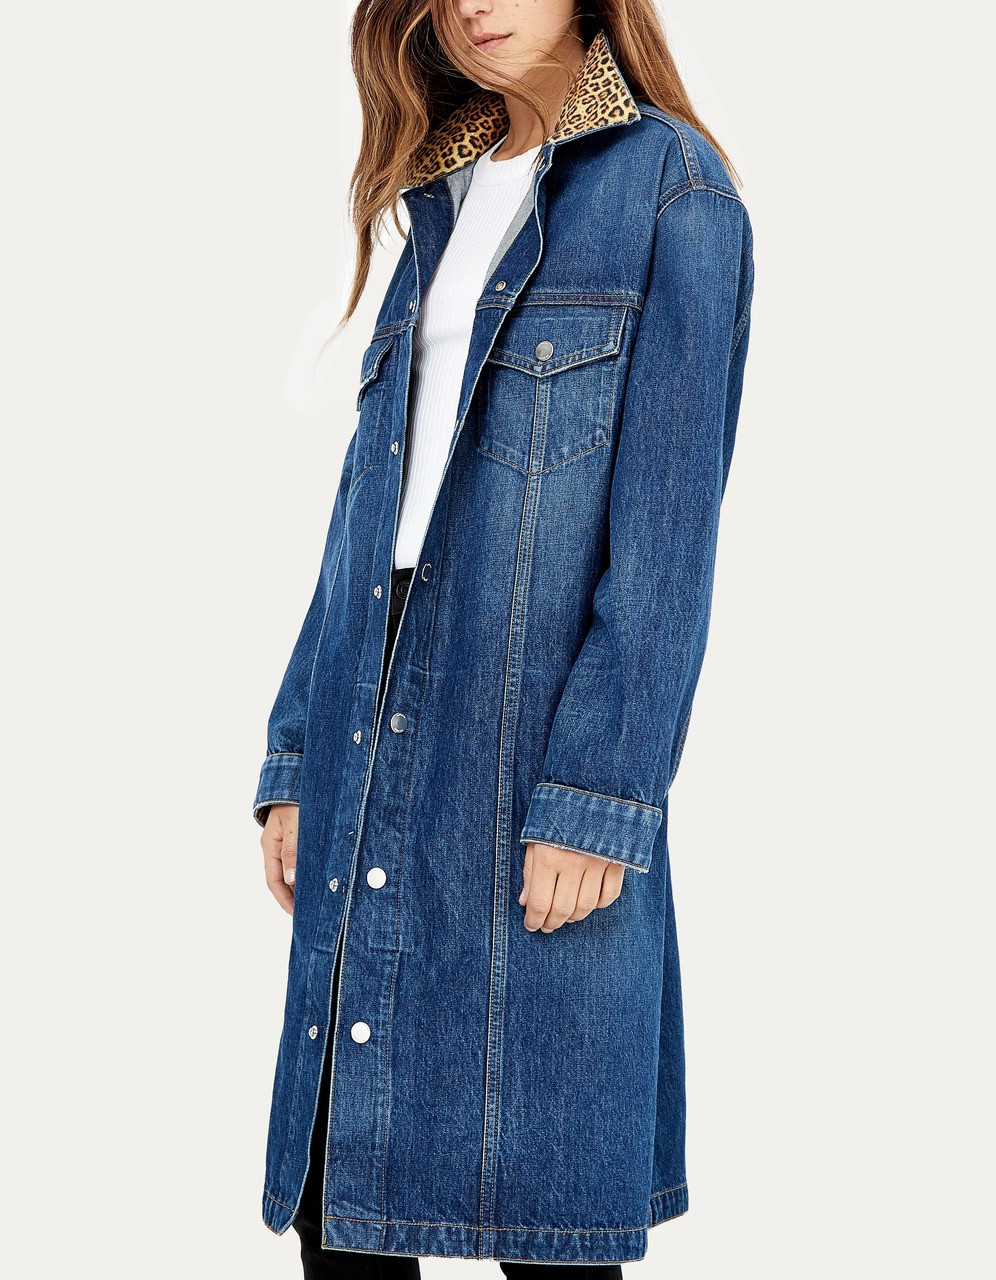 Shop for jean & denim jackets for women at mediacrucialxa.cf Browse women's jean & denim jackets & vests from top brands like Topshop, Levi's, Hudson & more. Free shipping & returns.